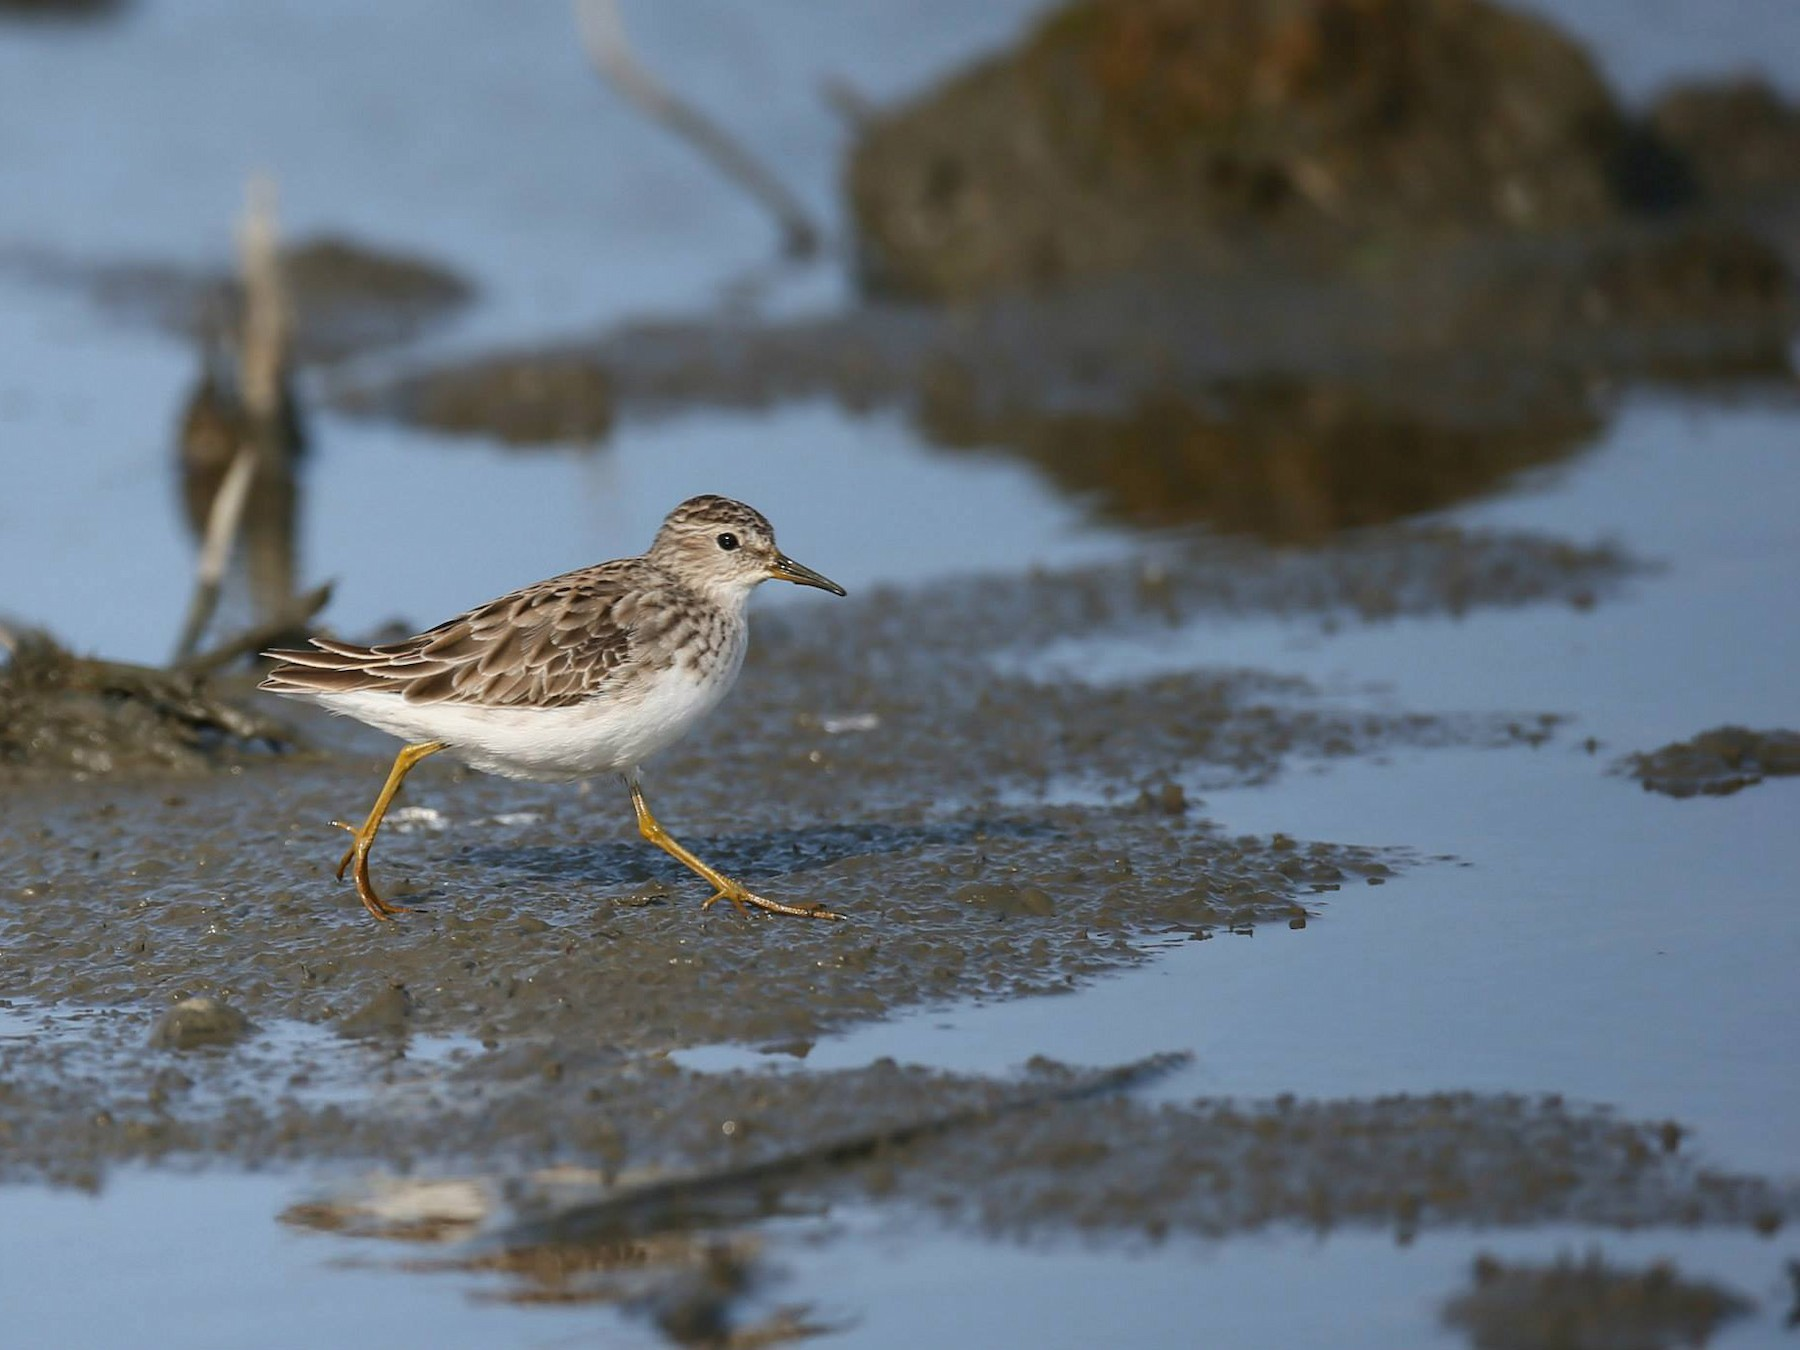 Long-toed Stint - Ting-Wei (廷維) HUNG (洪)